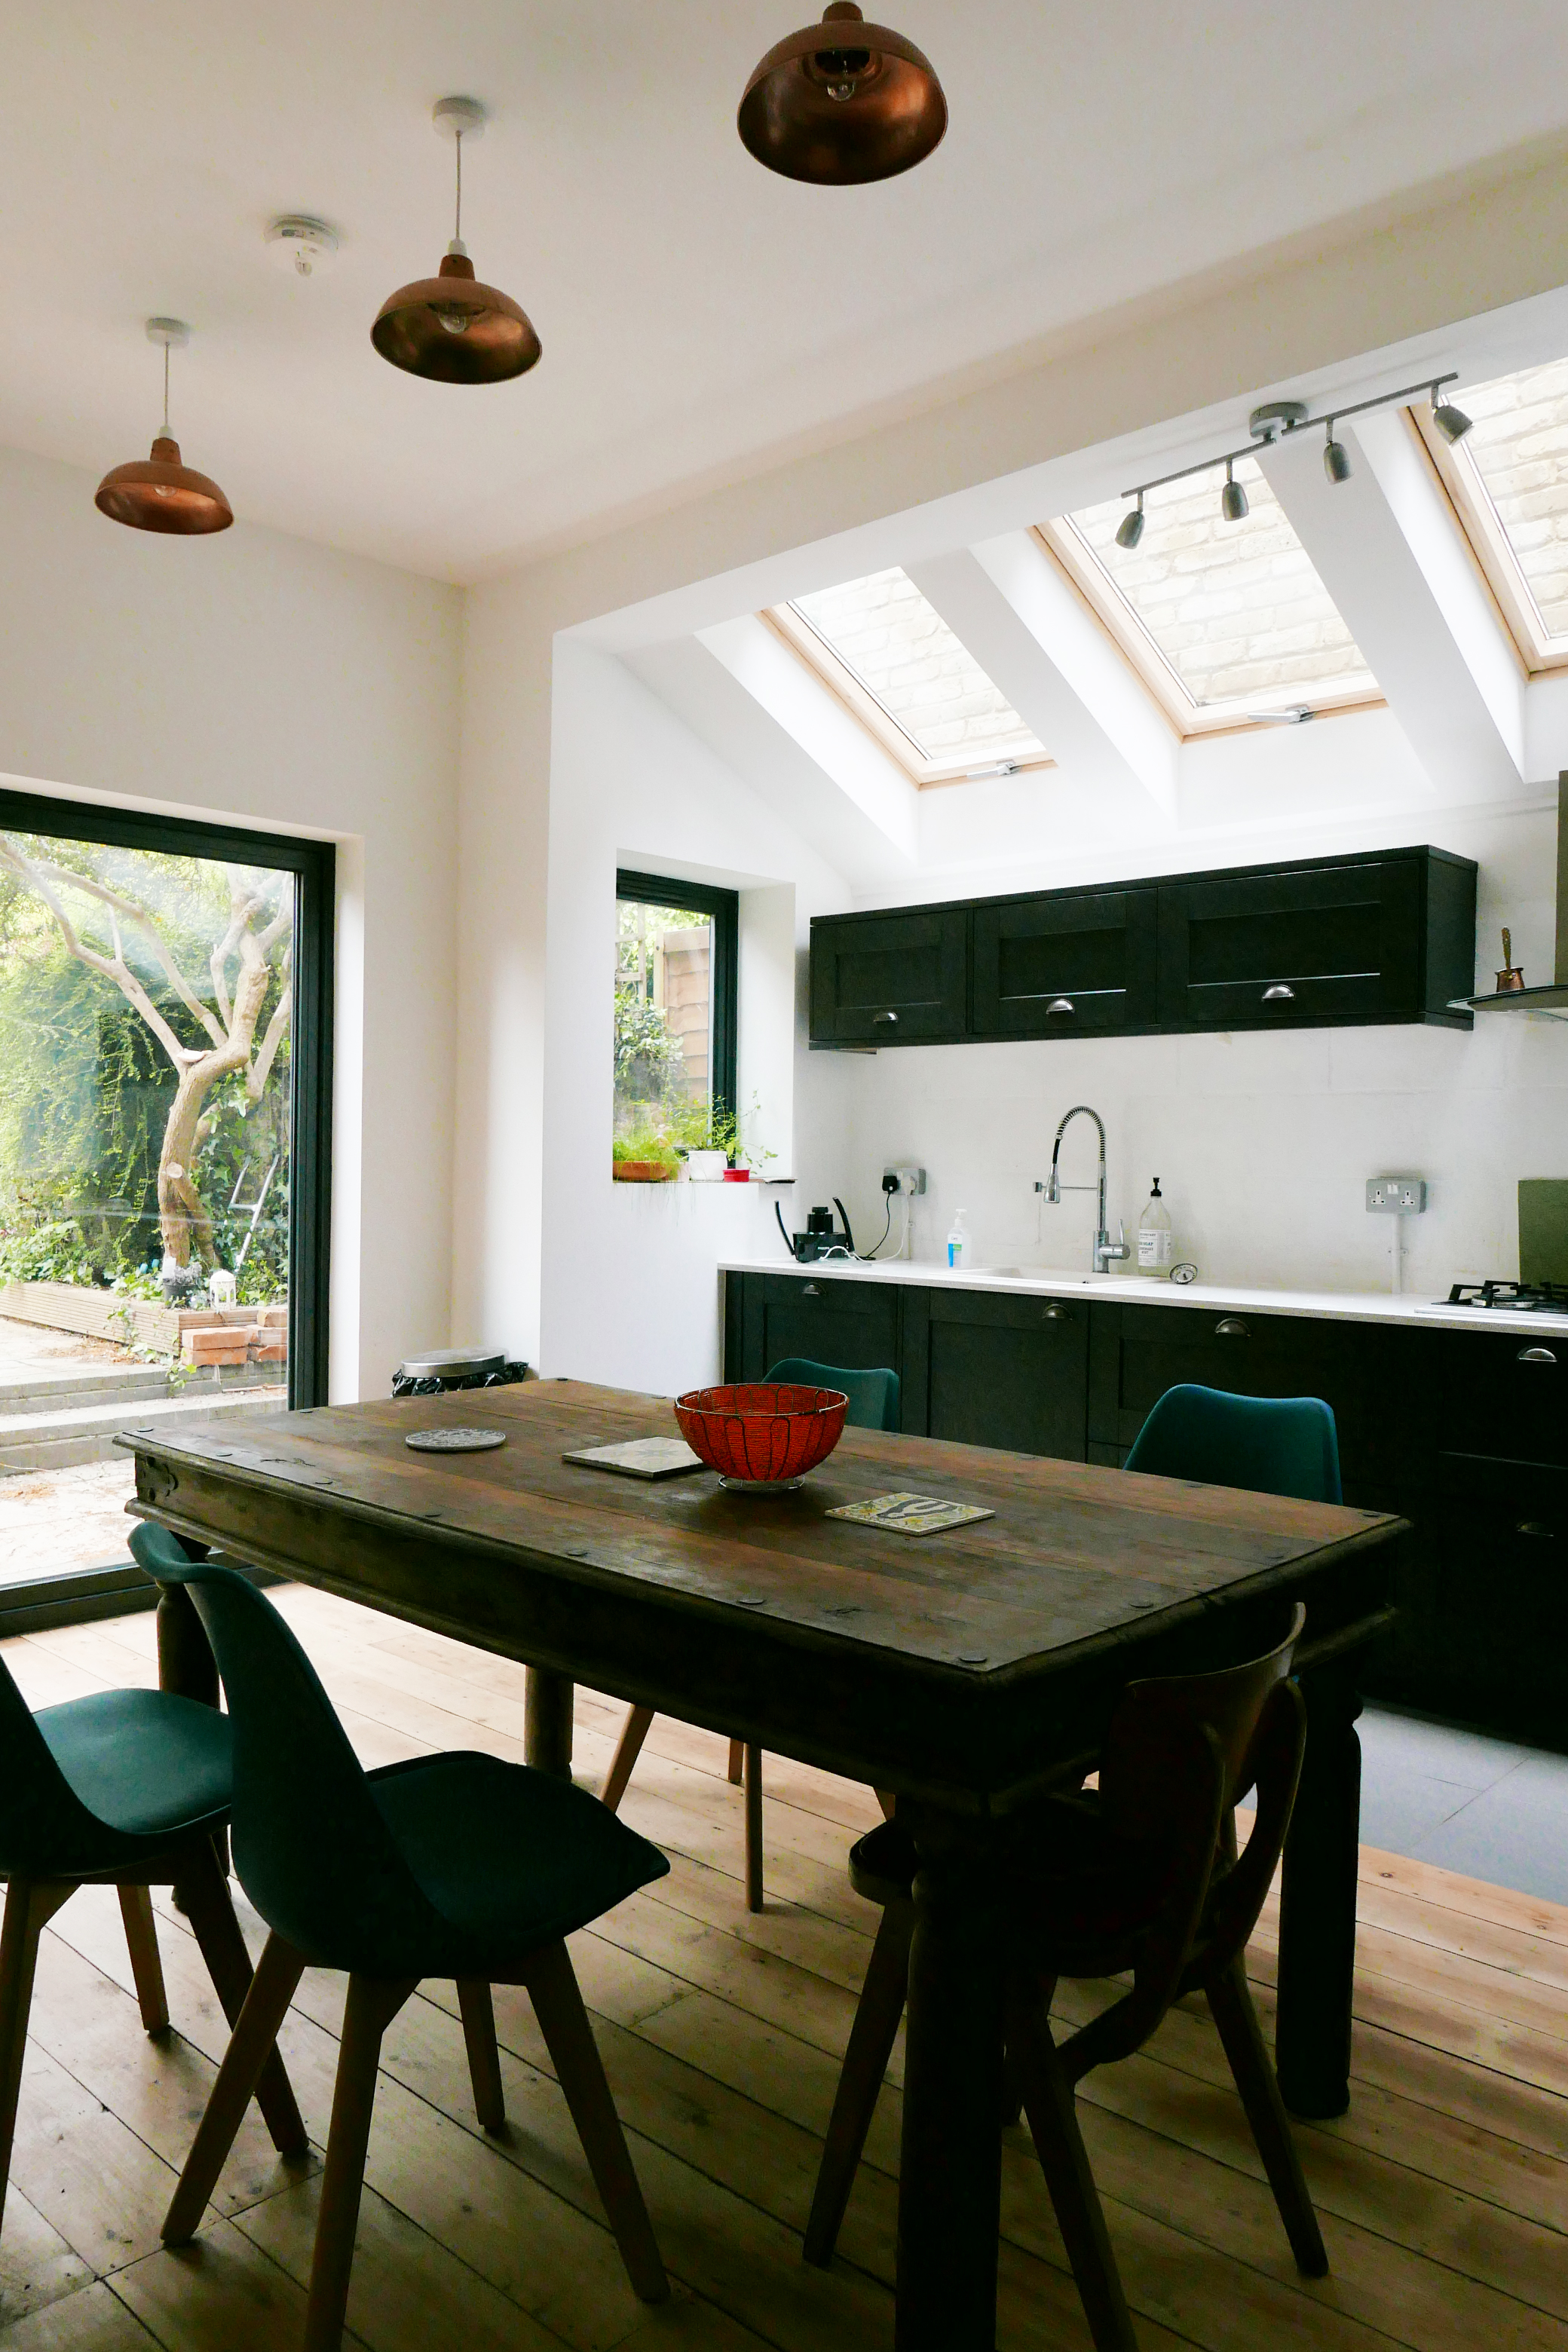 Orford Road Kitchen Extension Velux Windows Architect E17 Walthamstow Village